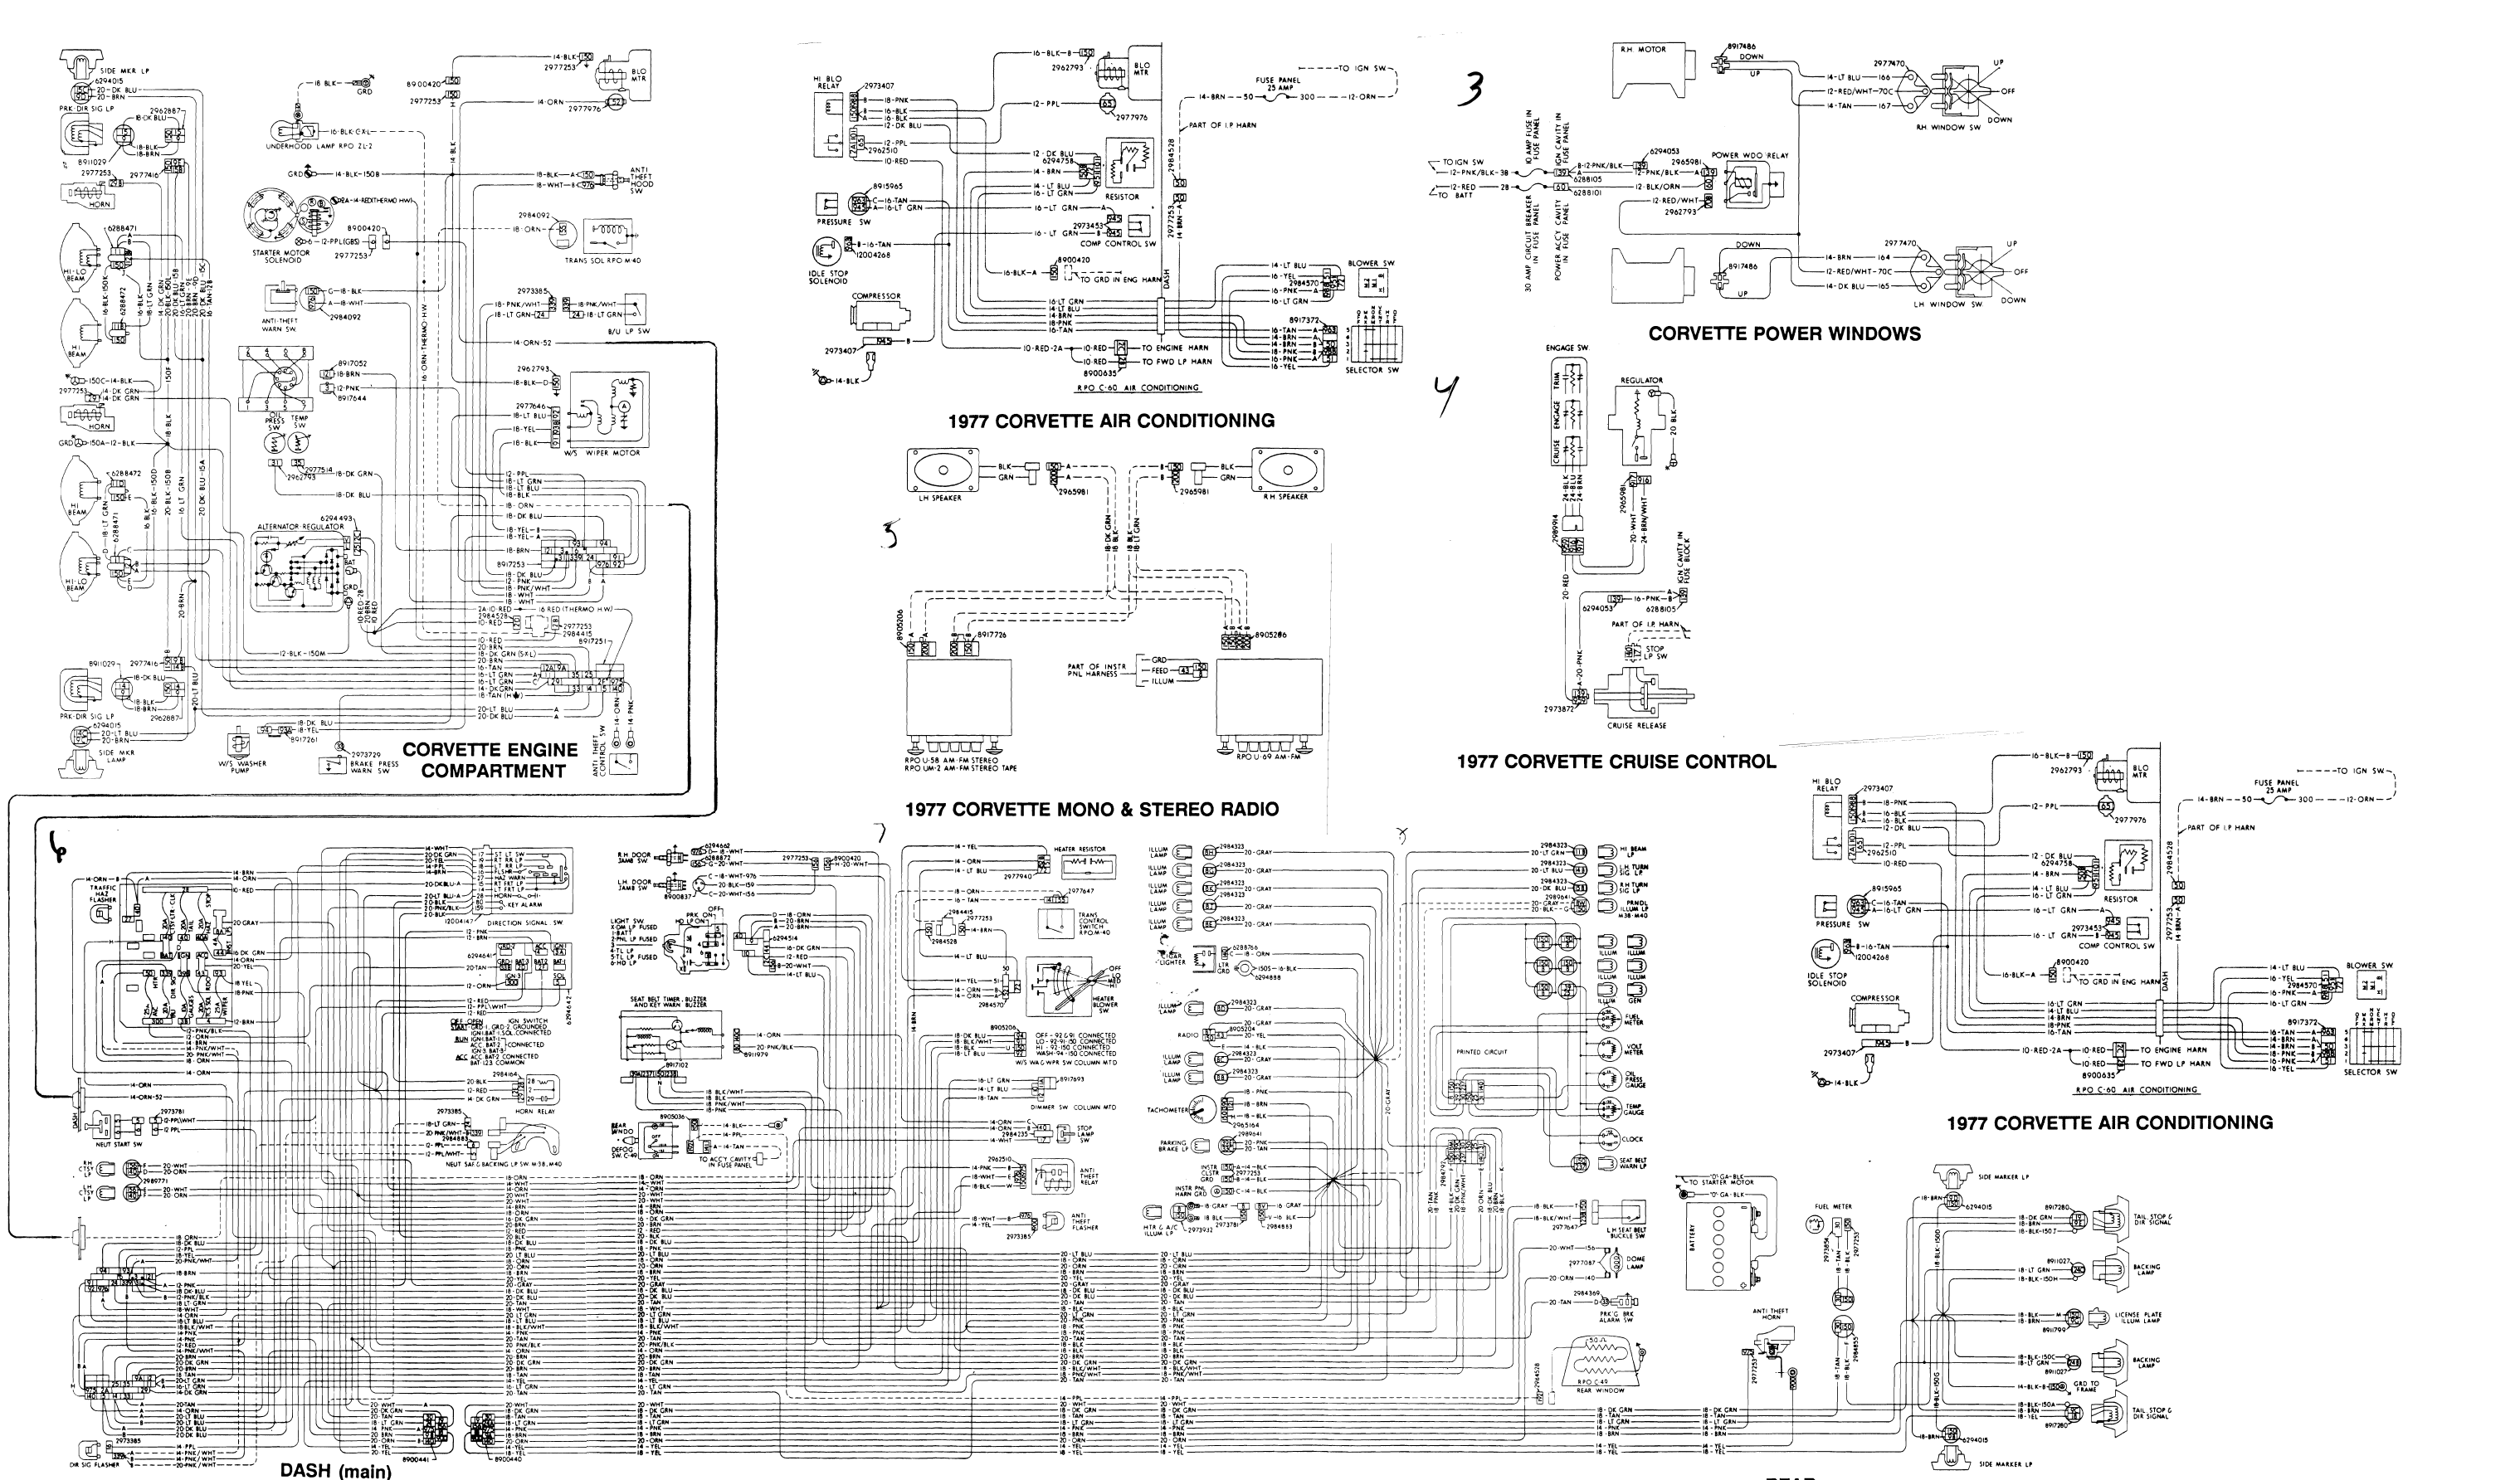 1977 trace harness website 1974 corvette tracer wiring diagram tracer schematic willcox 1963 corvette wiring diagram at gsmx.co